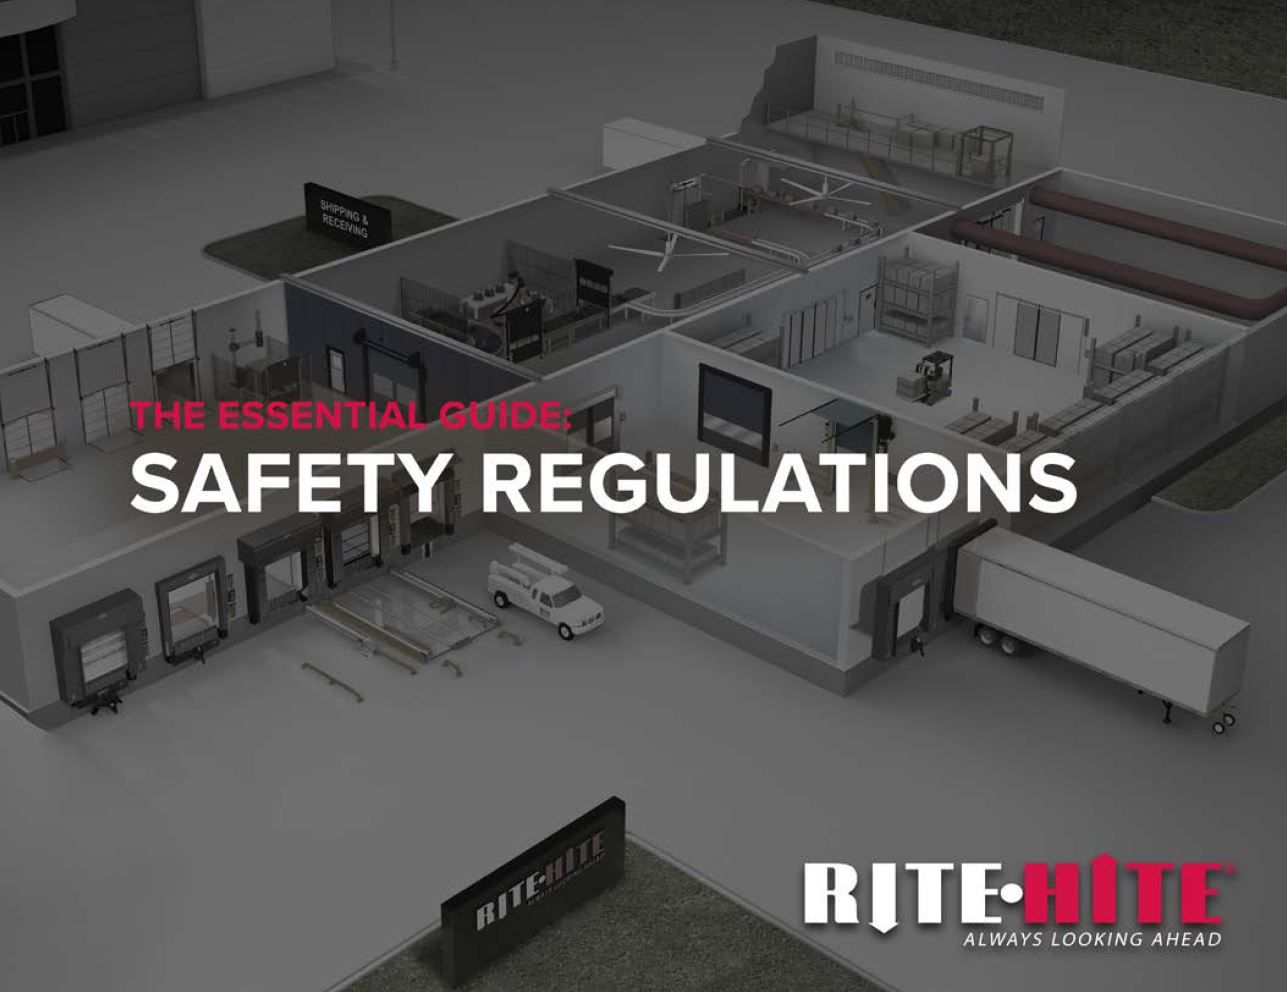 The Essential Guide: Safety Regulations